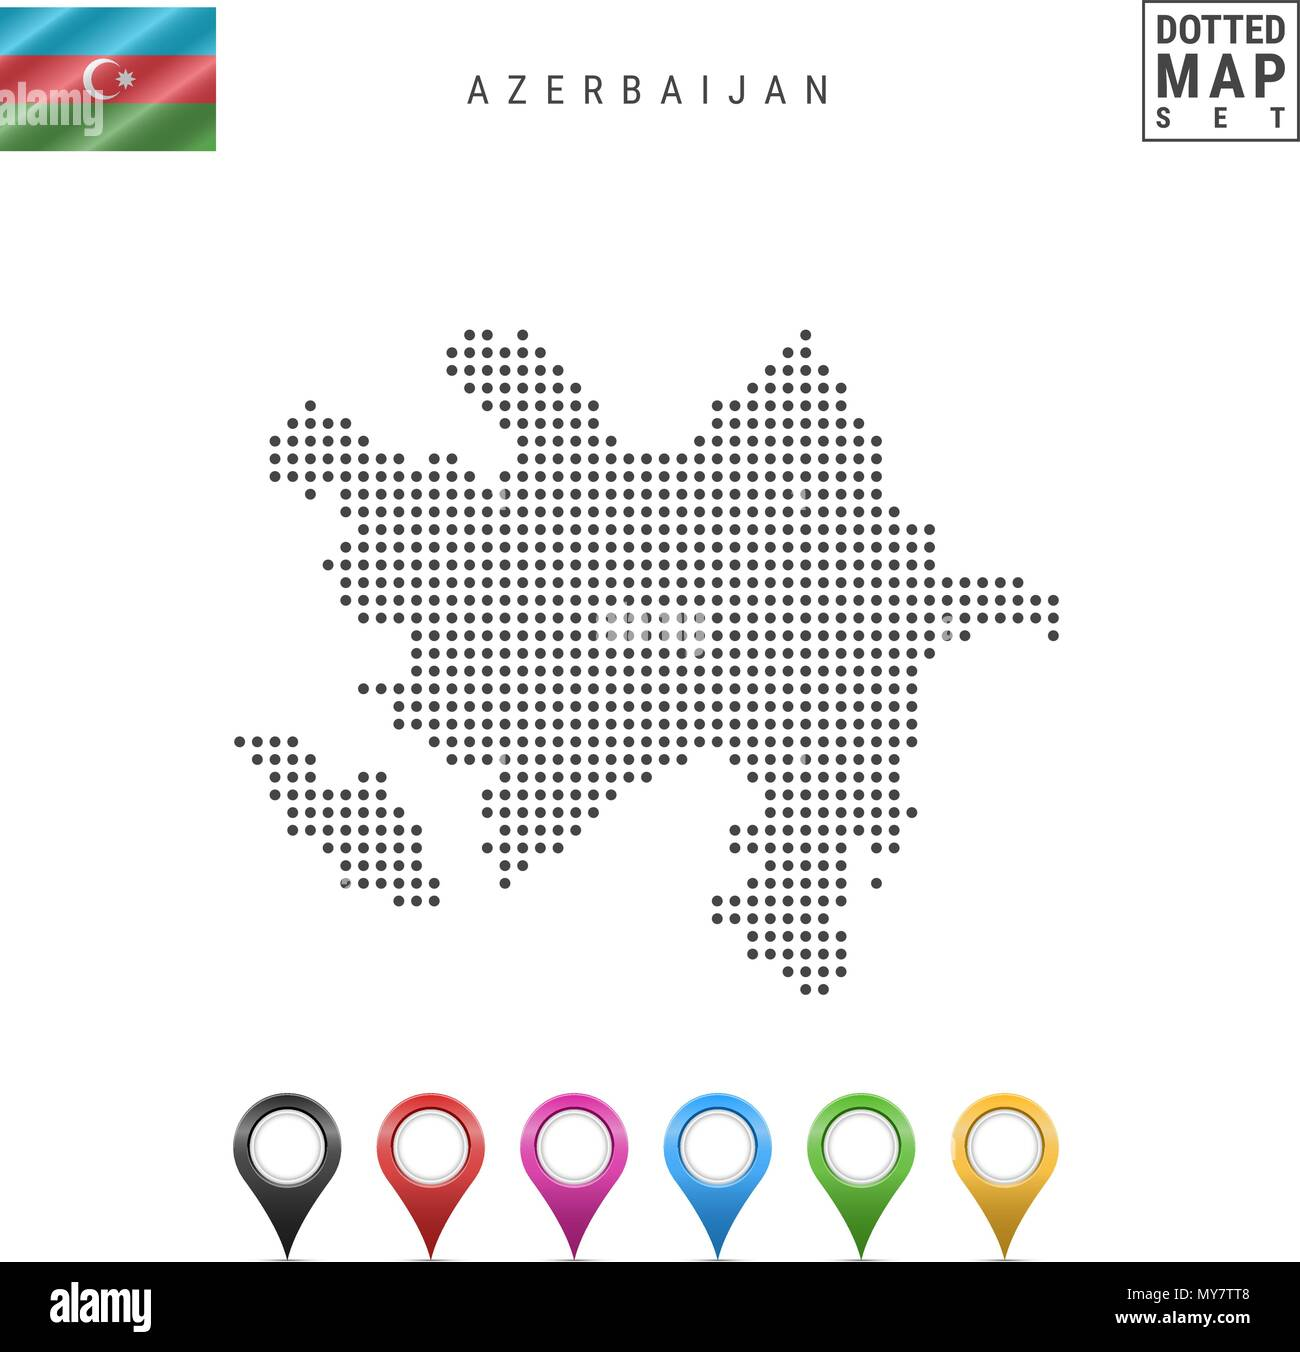 Vector Dotted Map of Azerbaijan. Simple Silhouette of Azerbaijan. National Flag of Azerbaijan. Multicolored Map Markers - Stock Vector